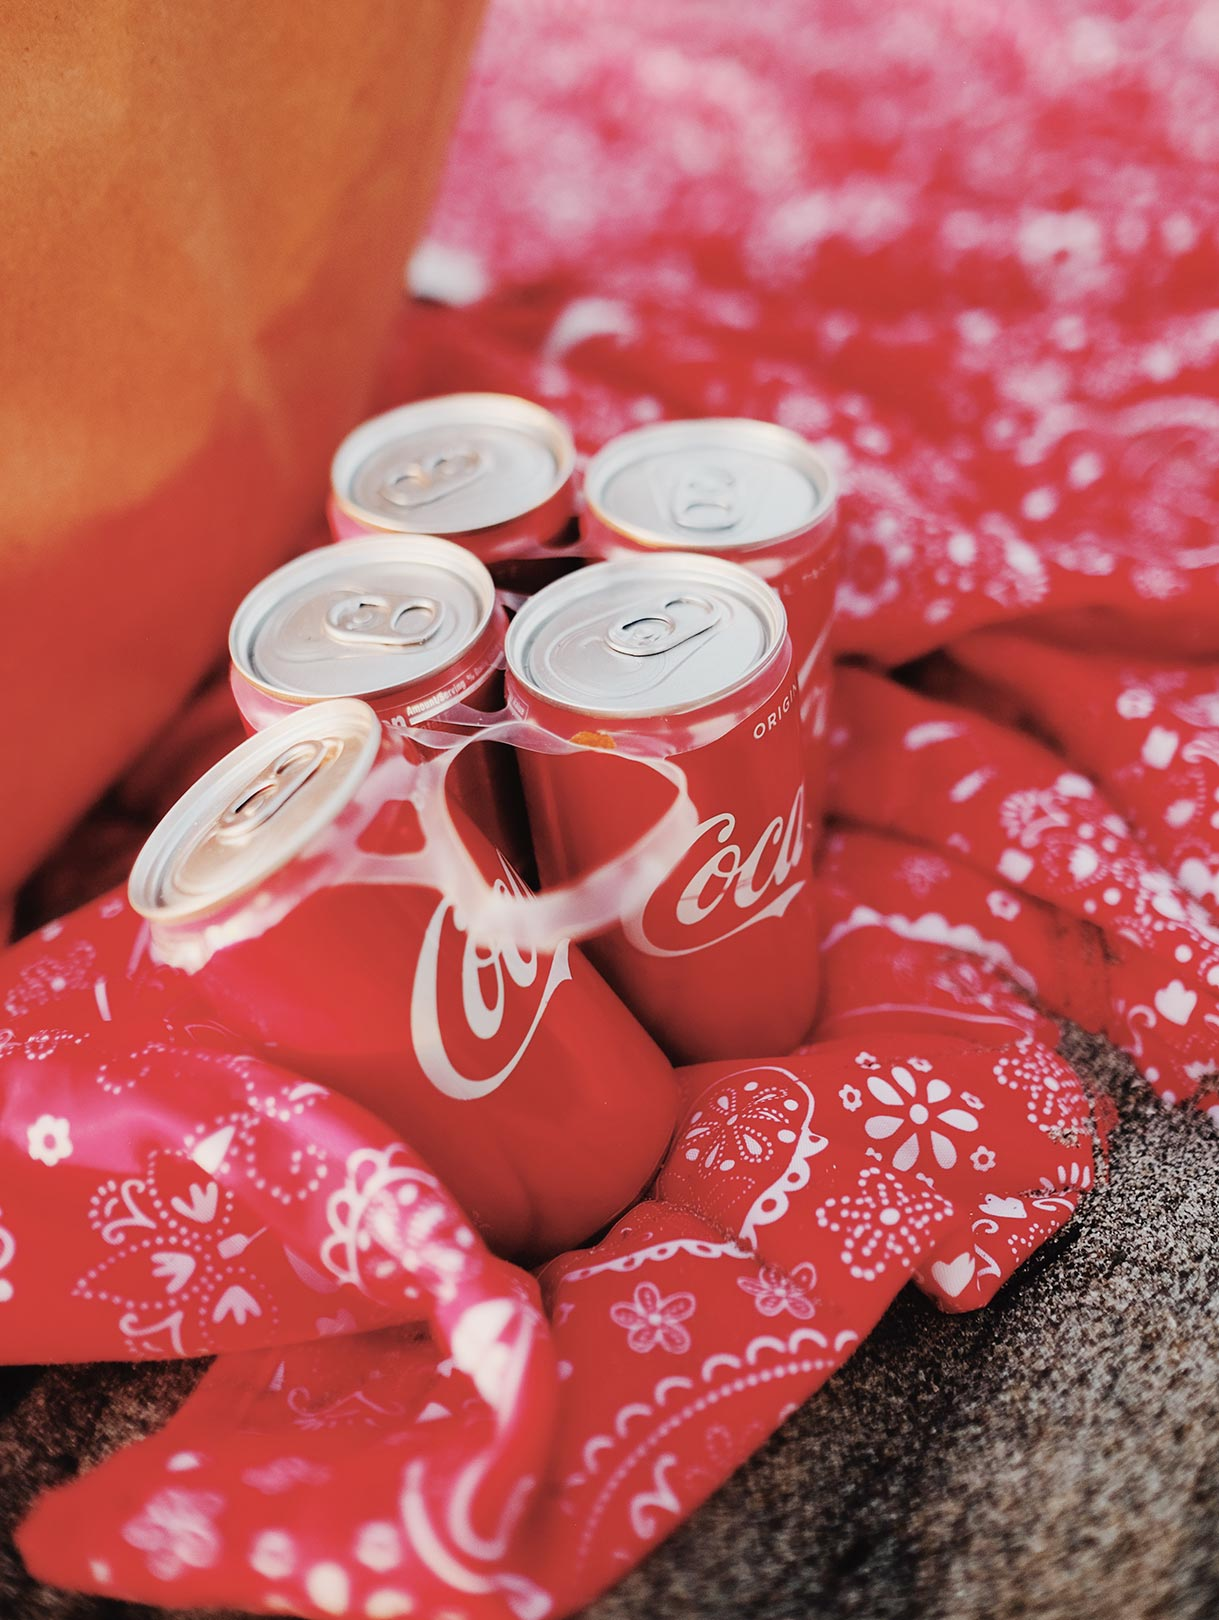 coke-cans-website